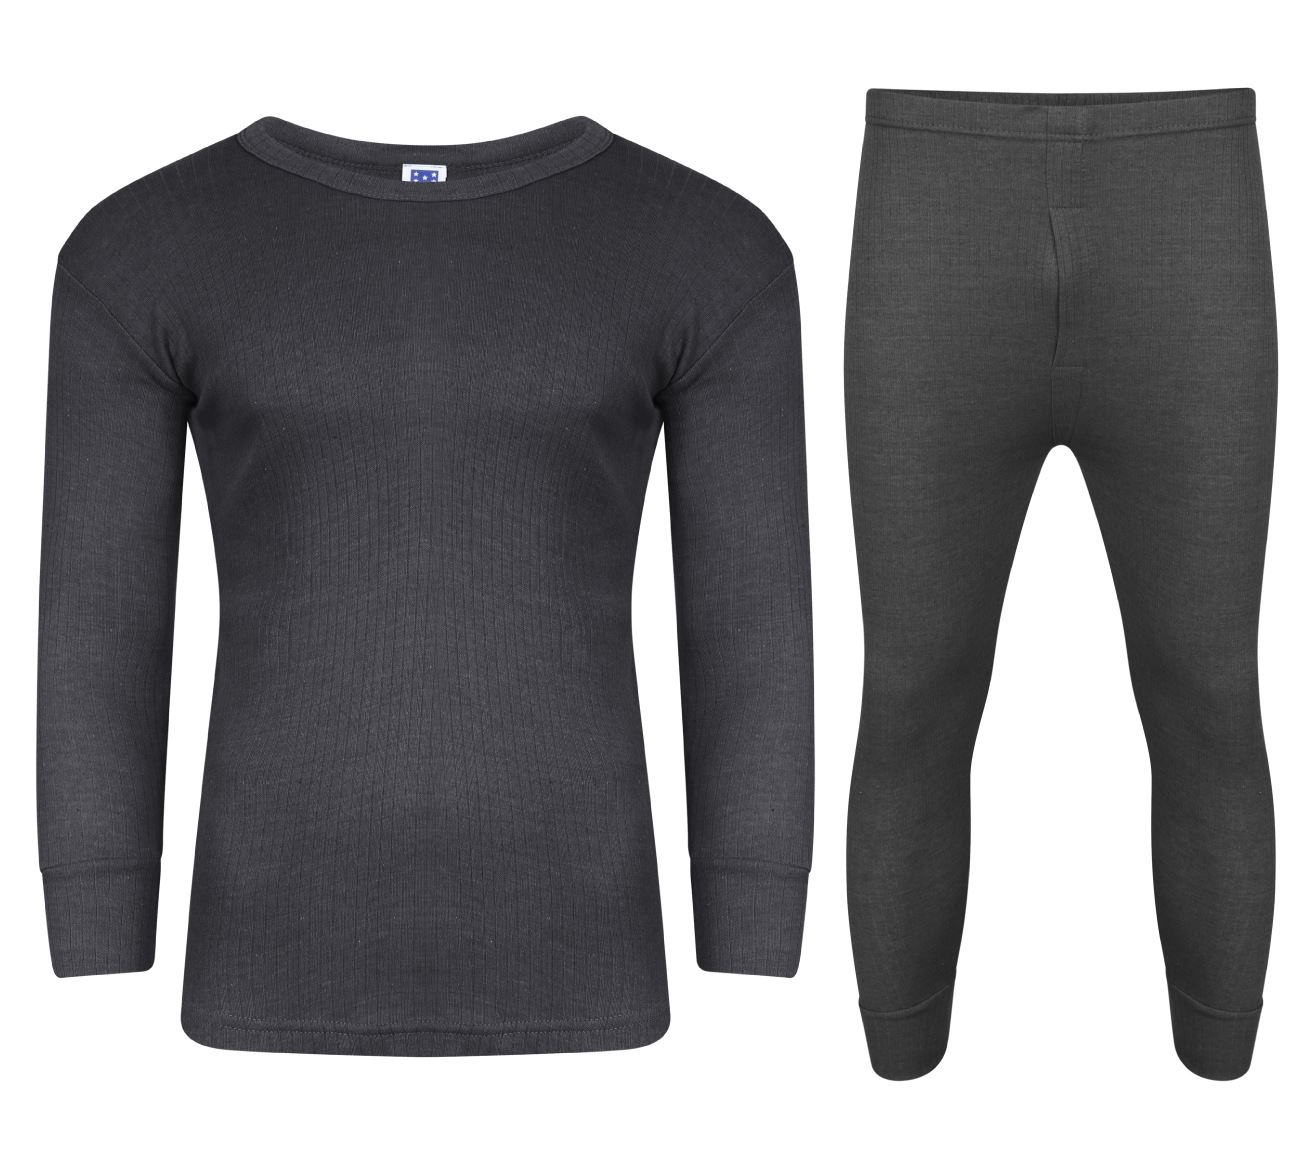 Mens-Thermal-Long-Johns-Short-Sleeve-T-Shirts-Winter-Warm-Thermal-Underwear